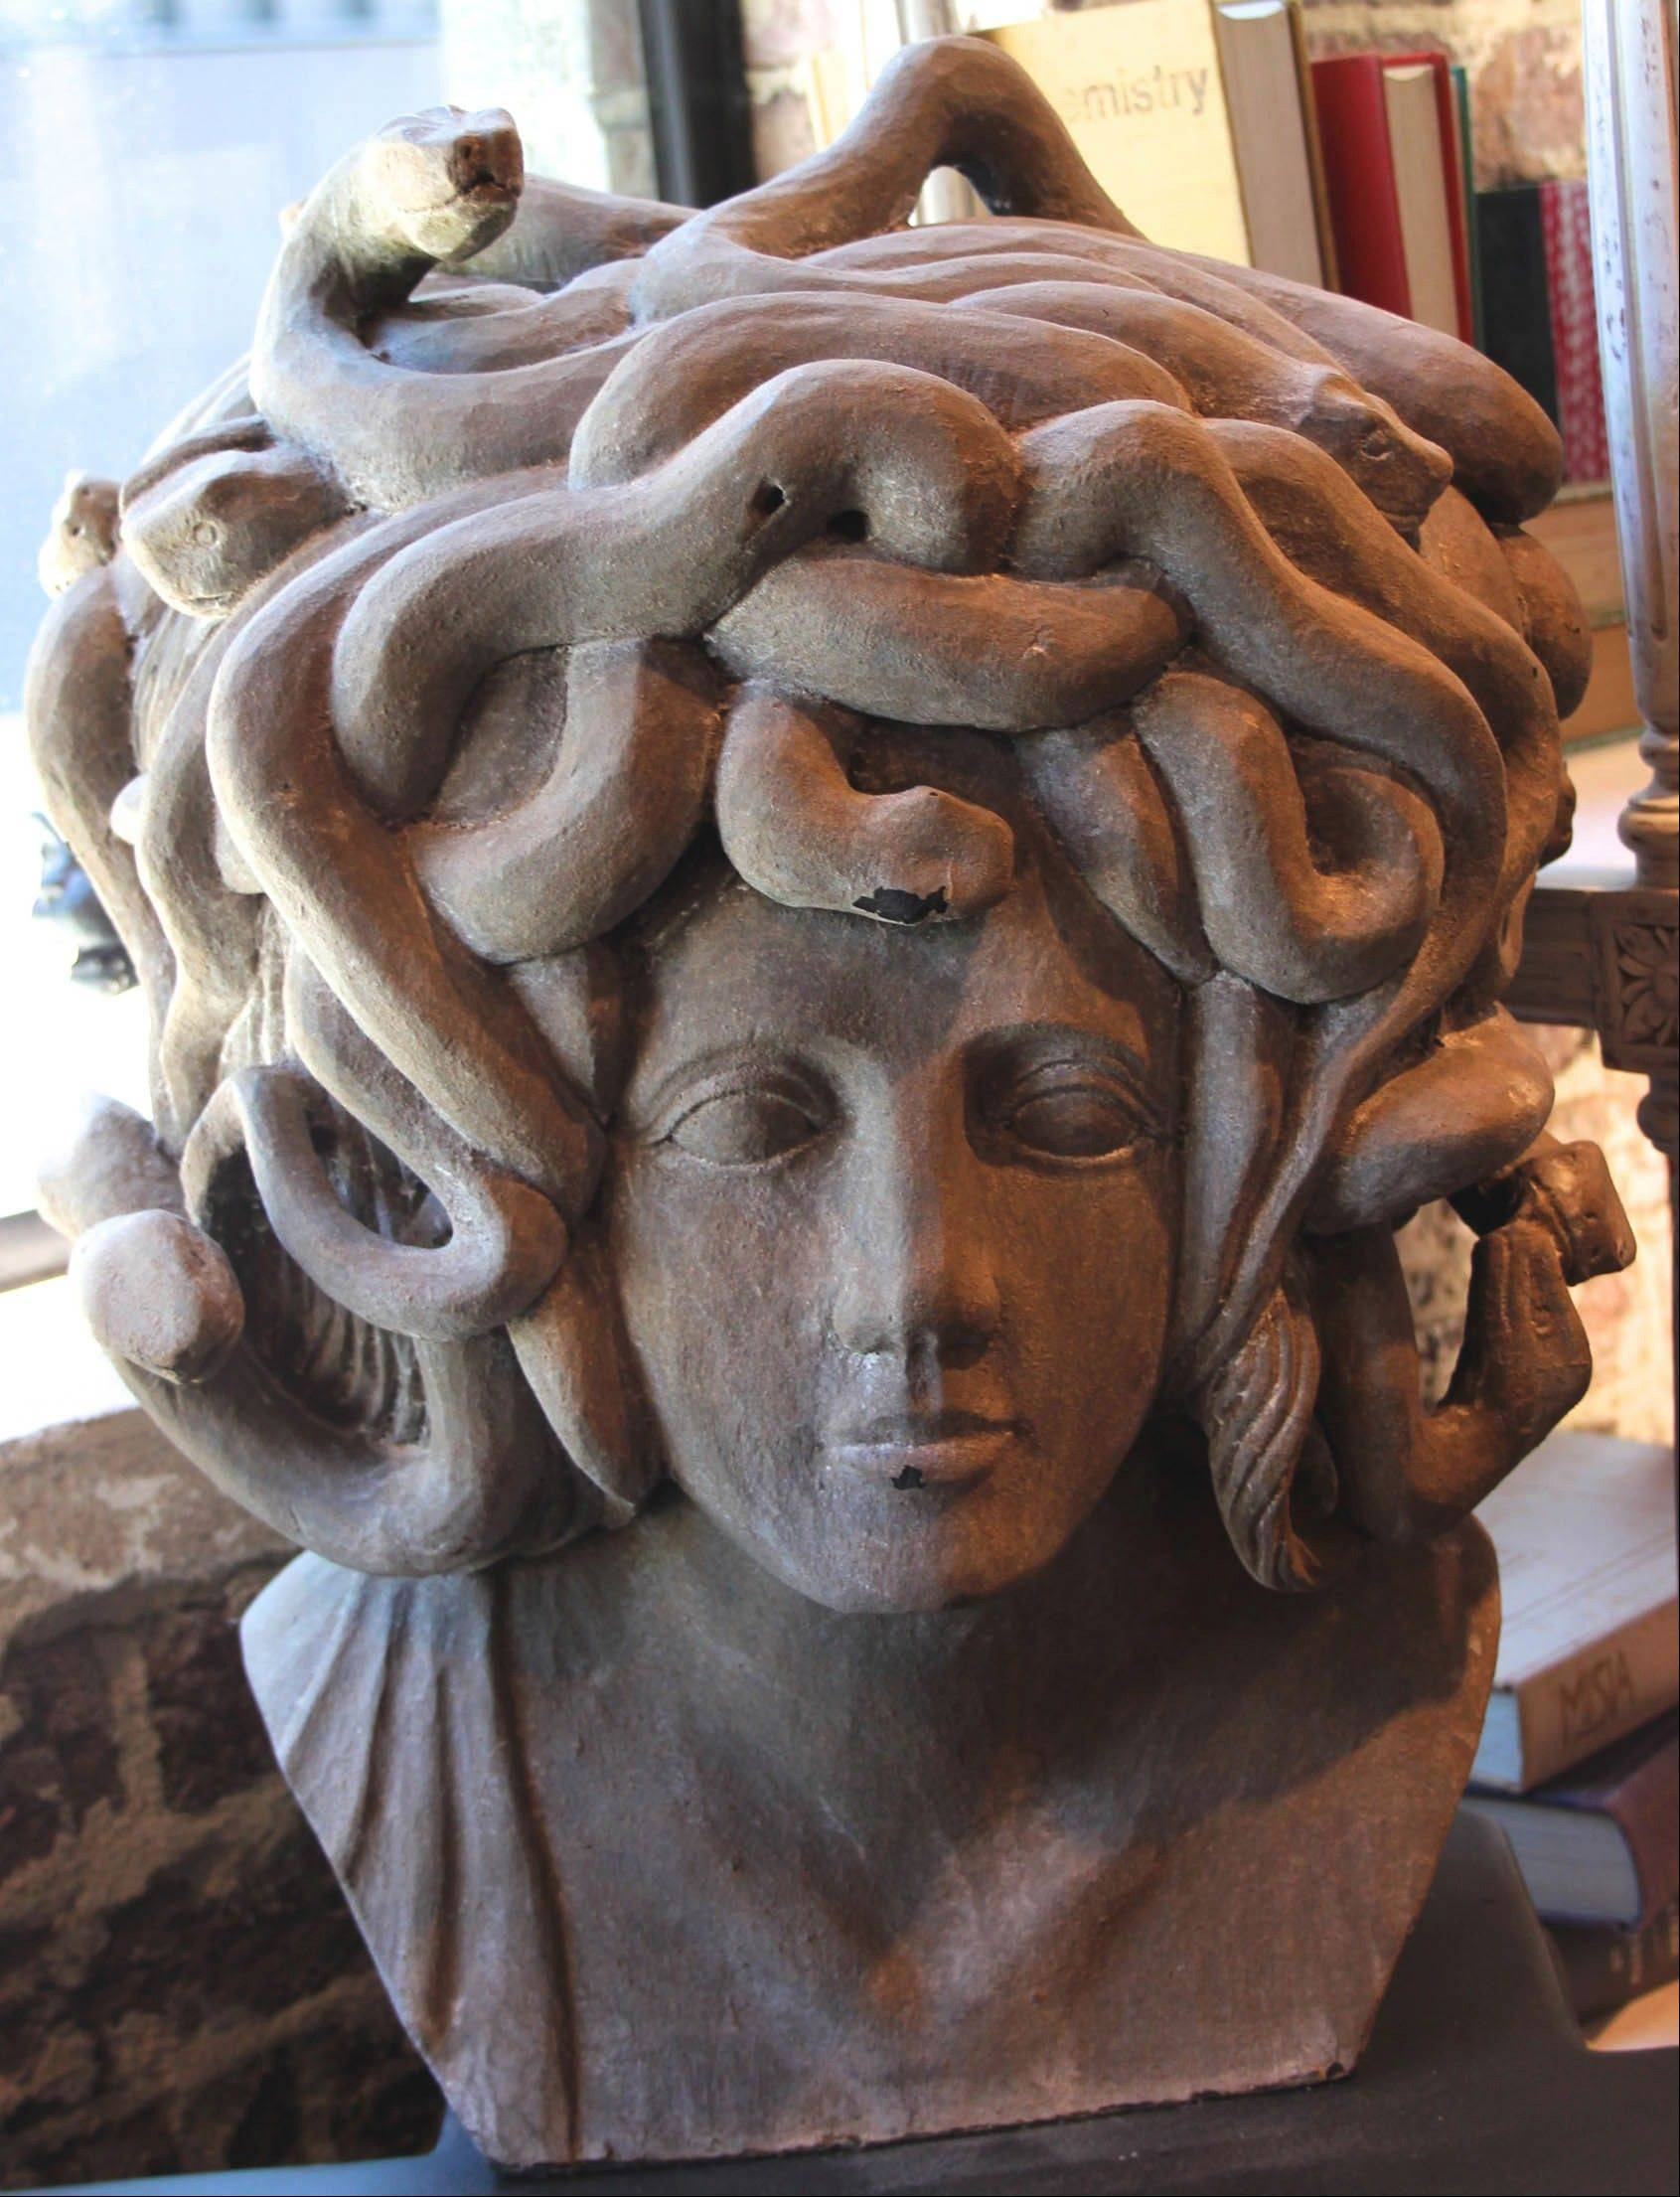 A driftwood bust of Medusa by Noir retails for $3,300.